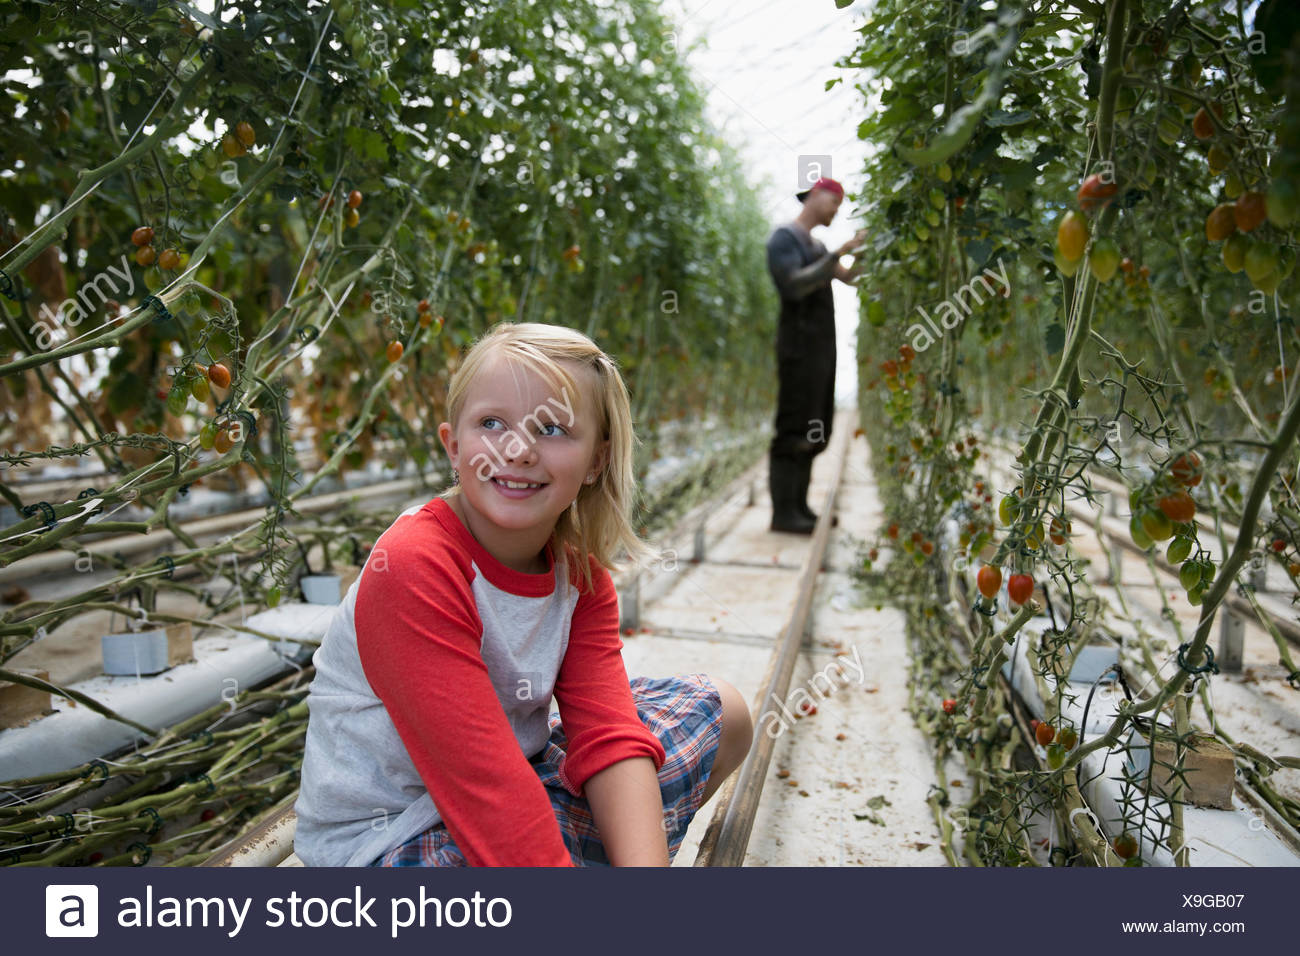 Smiling girl sitting in greenhouse among growing tomato plants - Stock Image